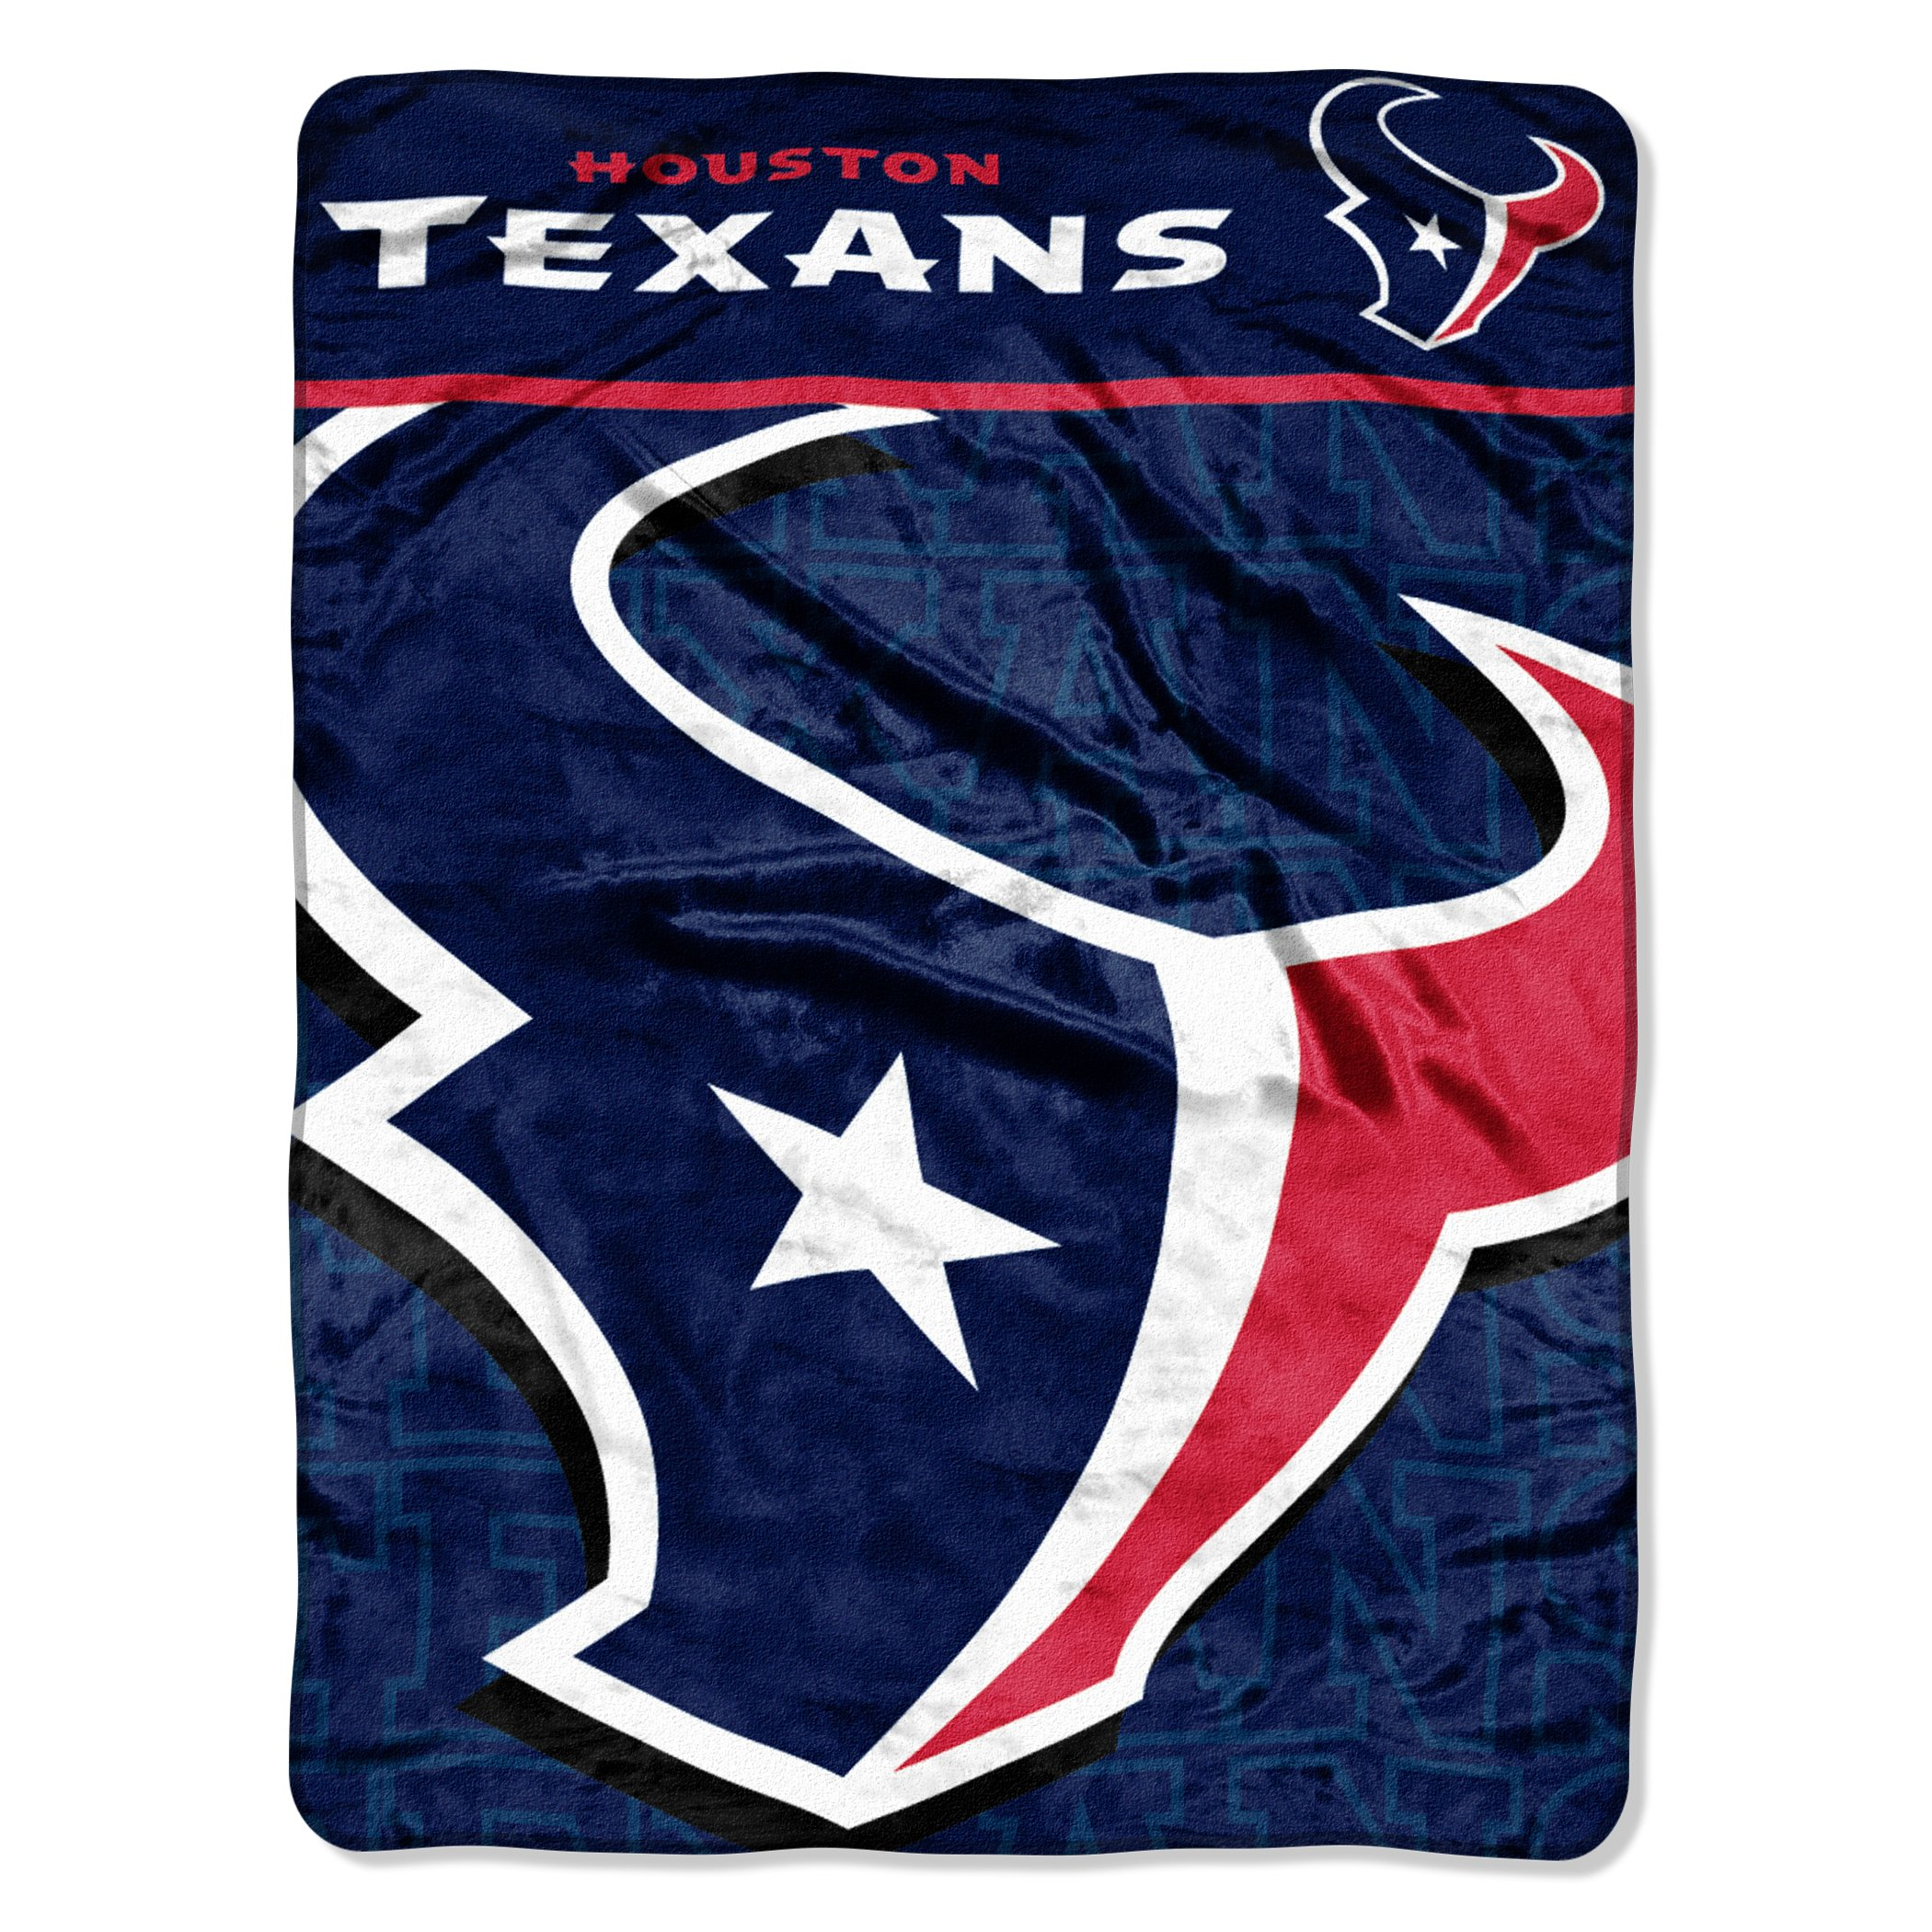 The Northwest Company Officially Licensed NFL Houston Texans Livin Large Micro Raschel Throw Blanket, 46'' x 60'', Multi Color by The Northwest Company